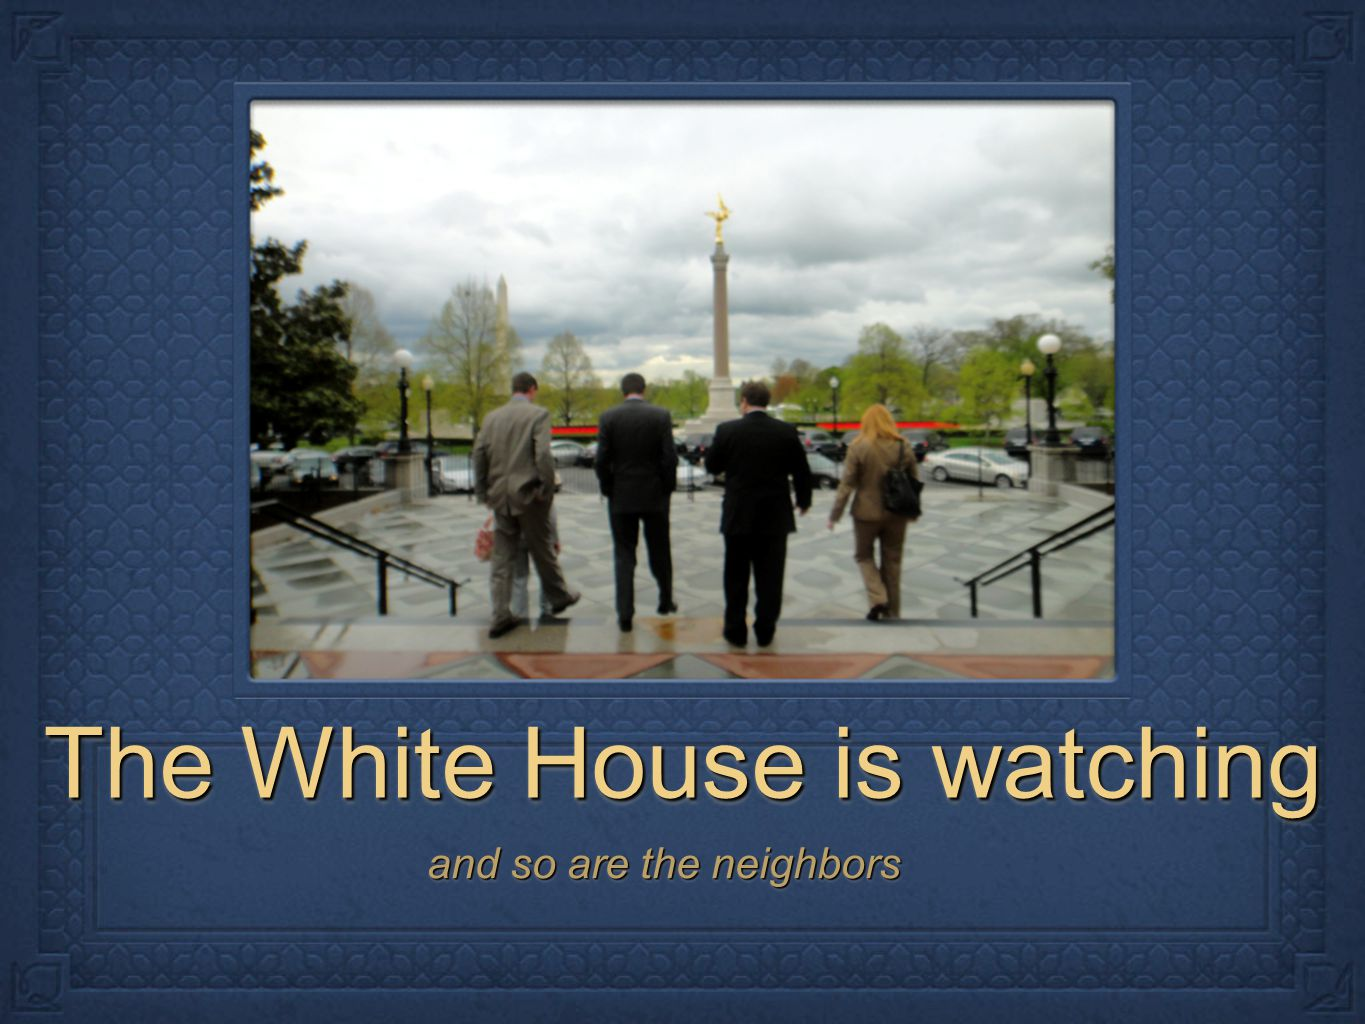 The White House is watching and so are the neighbors